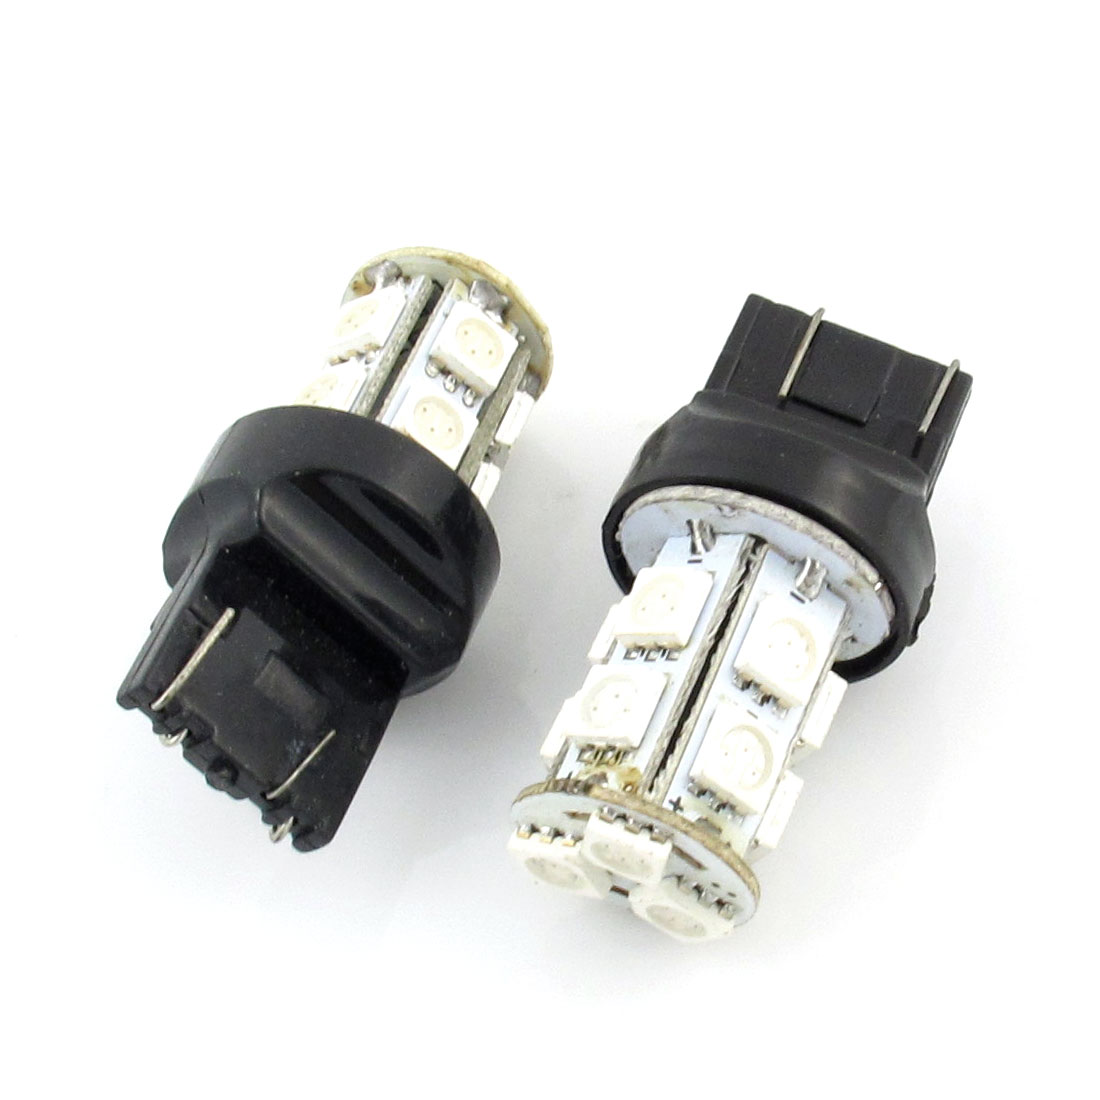 2 Pcs 7443 13 Yellow 5050 SMD LED Auto Car Dashboard Panel Light Bulb internal